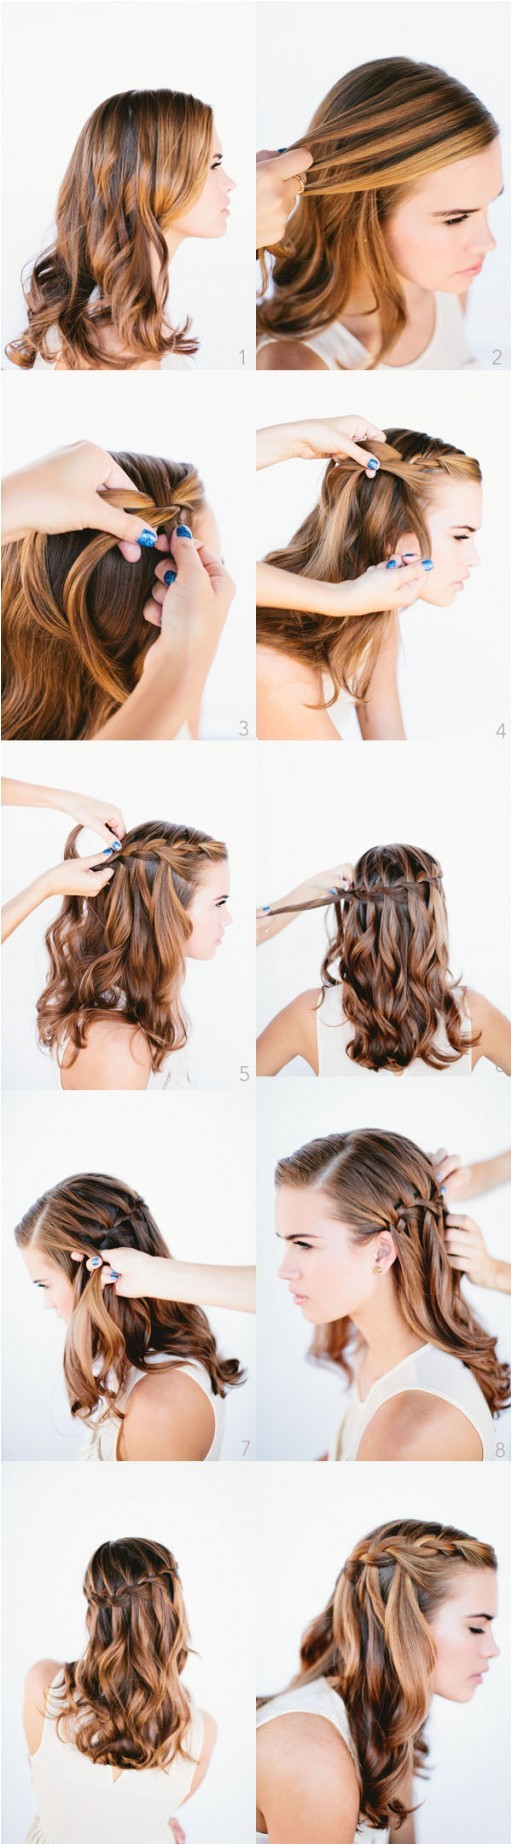 how to do waterfall braid wedding hairstyle for long hairs step by step diy tutorial instructions